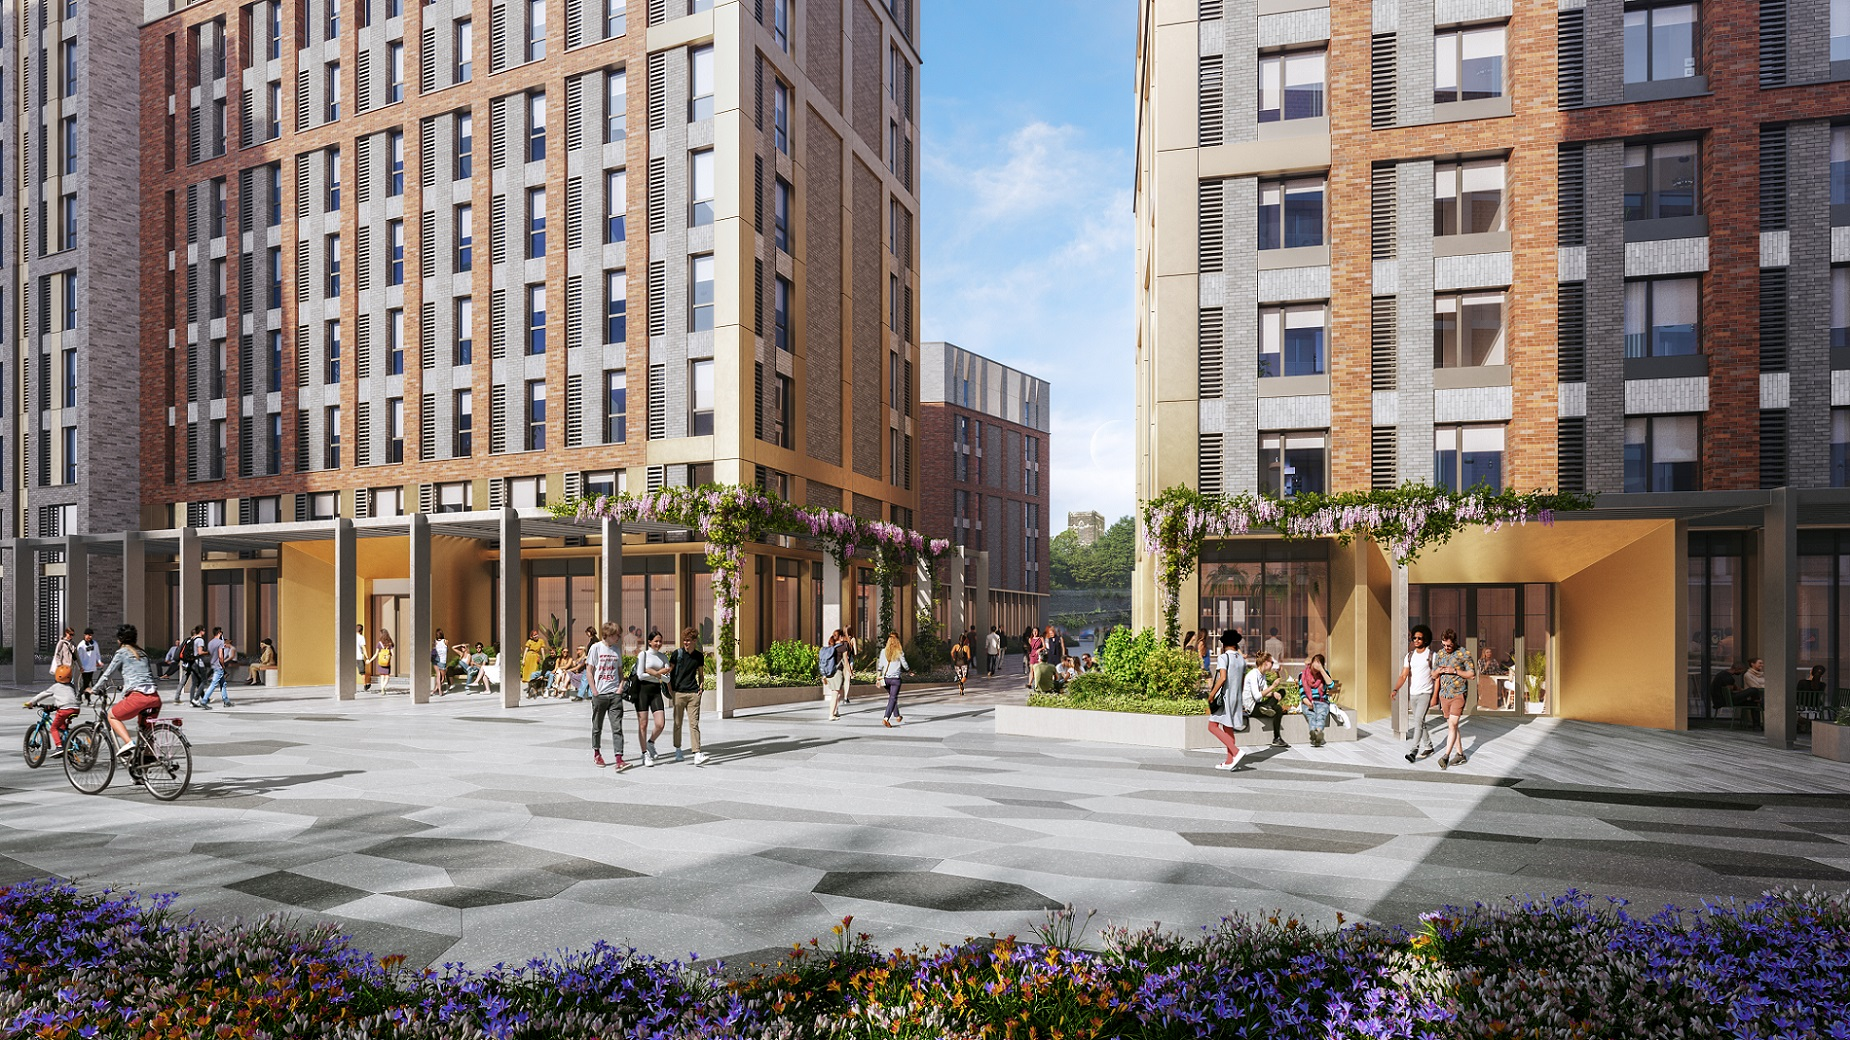 Planning approved for 702-bed student living scheme at The Island Quarter